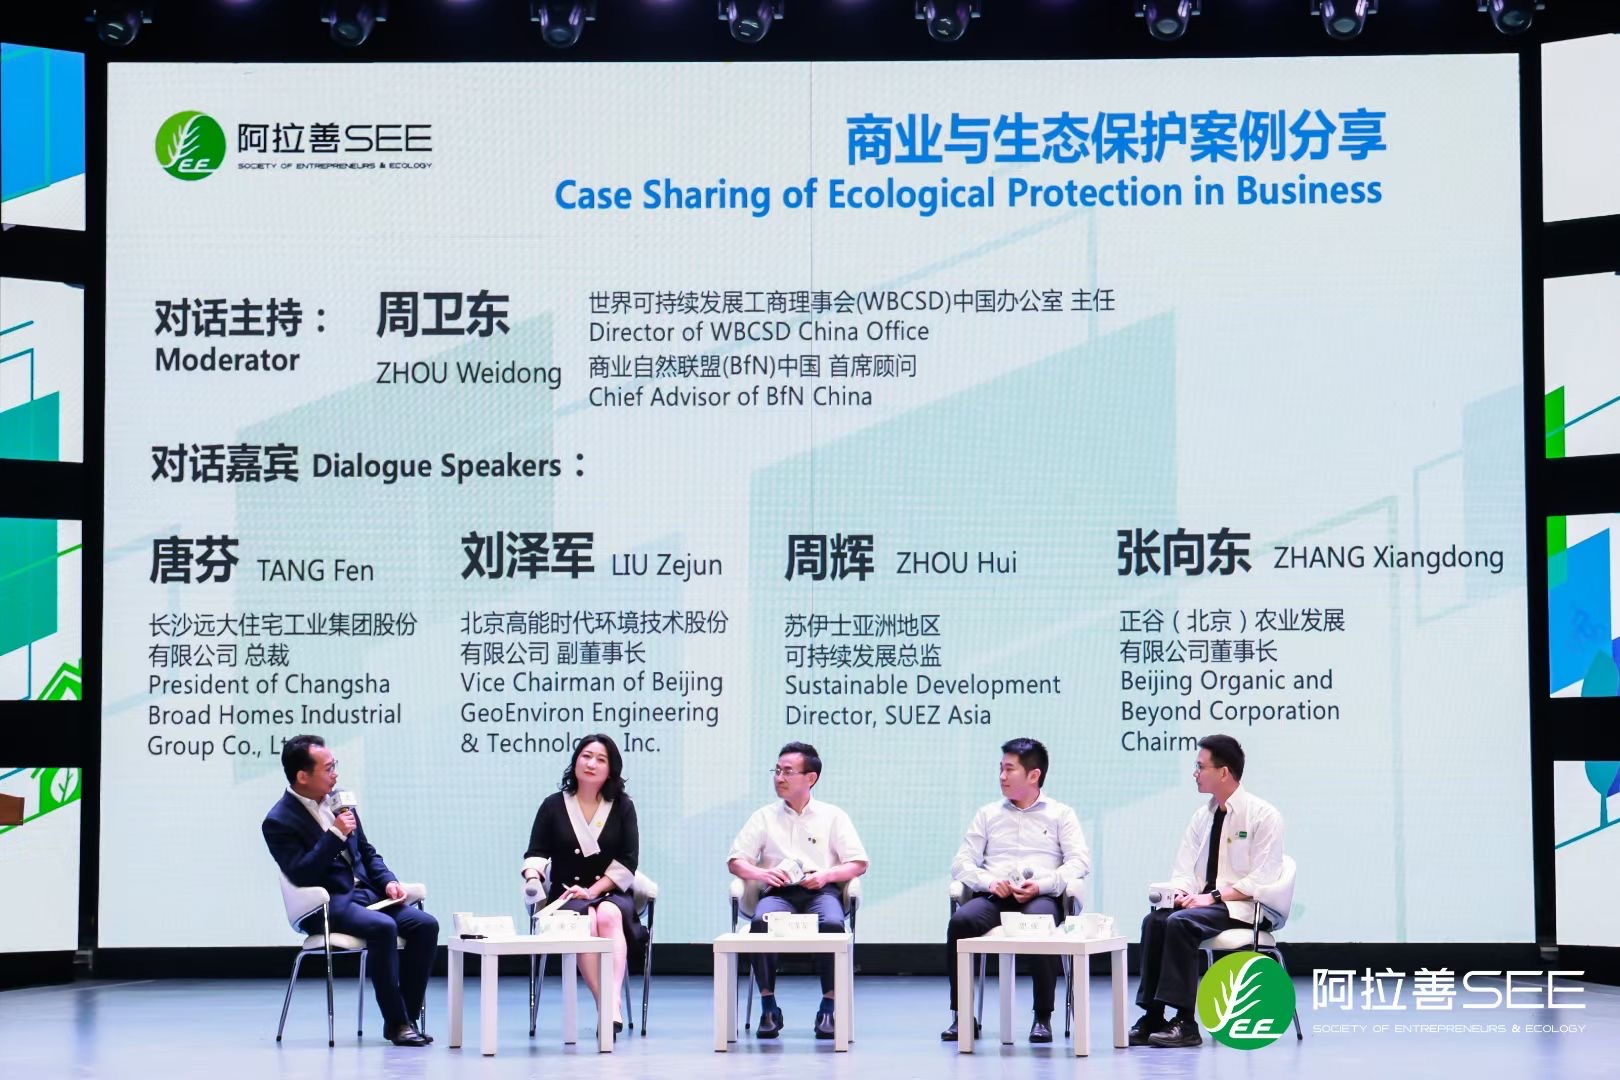 hinese businesses participate in a discussion on nature and biodiversity organized by the Society of Entrepreneurs and Ecology (SEE).